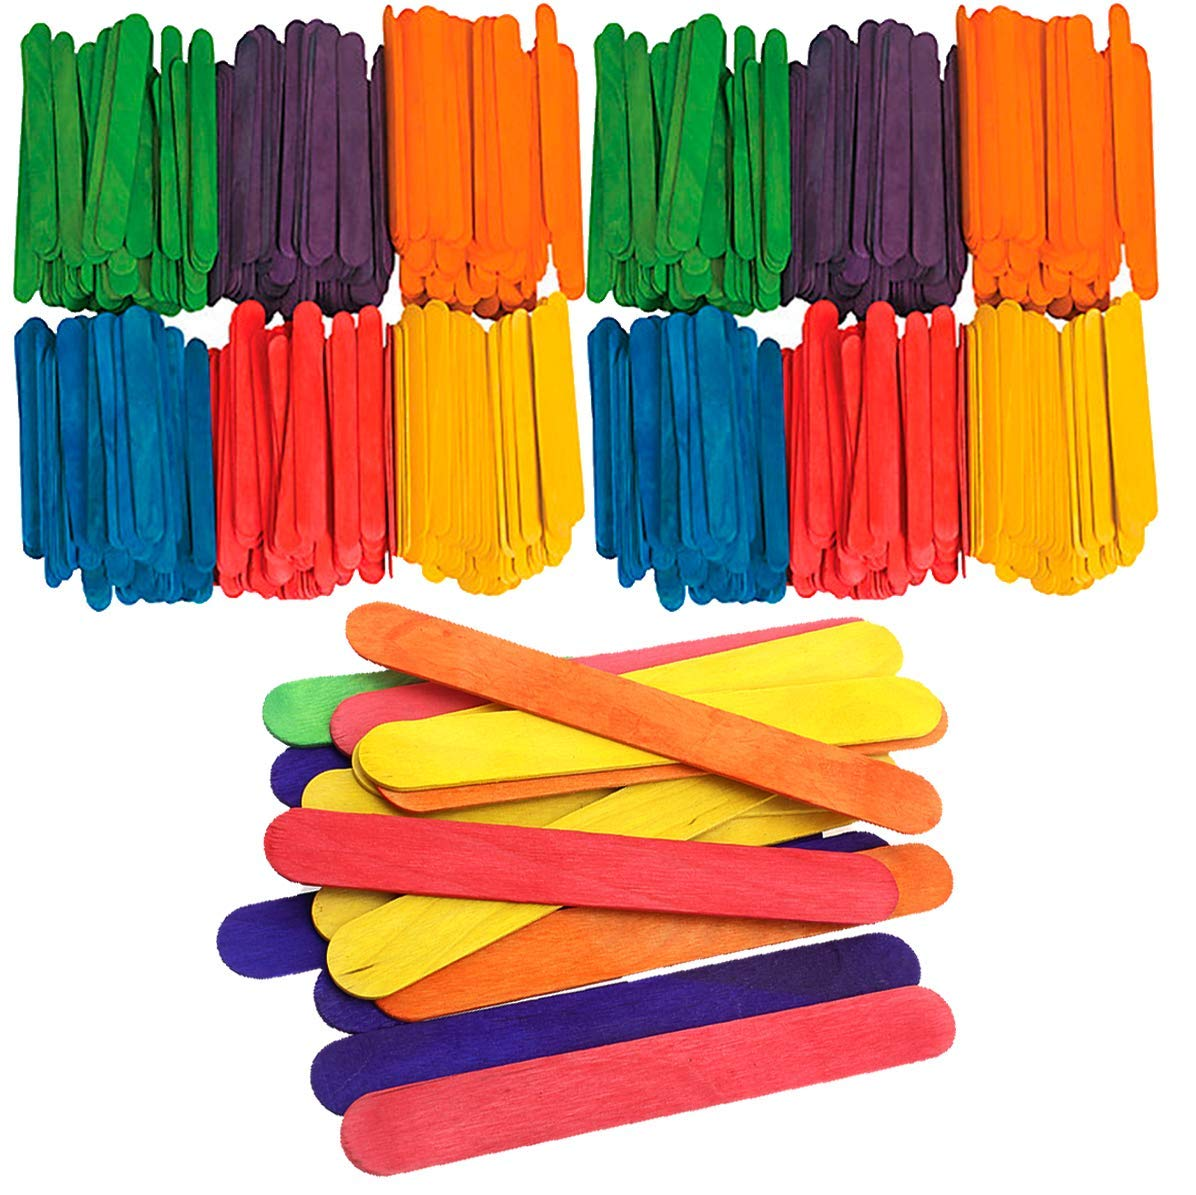 Kicko Jumbo Popsicle Sticks - Wooden Colored Craft Stix 5.5 x .75 Inches - 200 Pack Large Assortment Pop Sticks - for Kids, DIY Projects, School Supplies, and Crafting